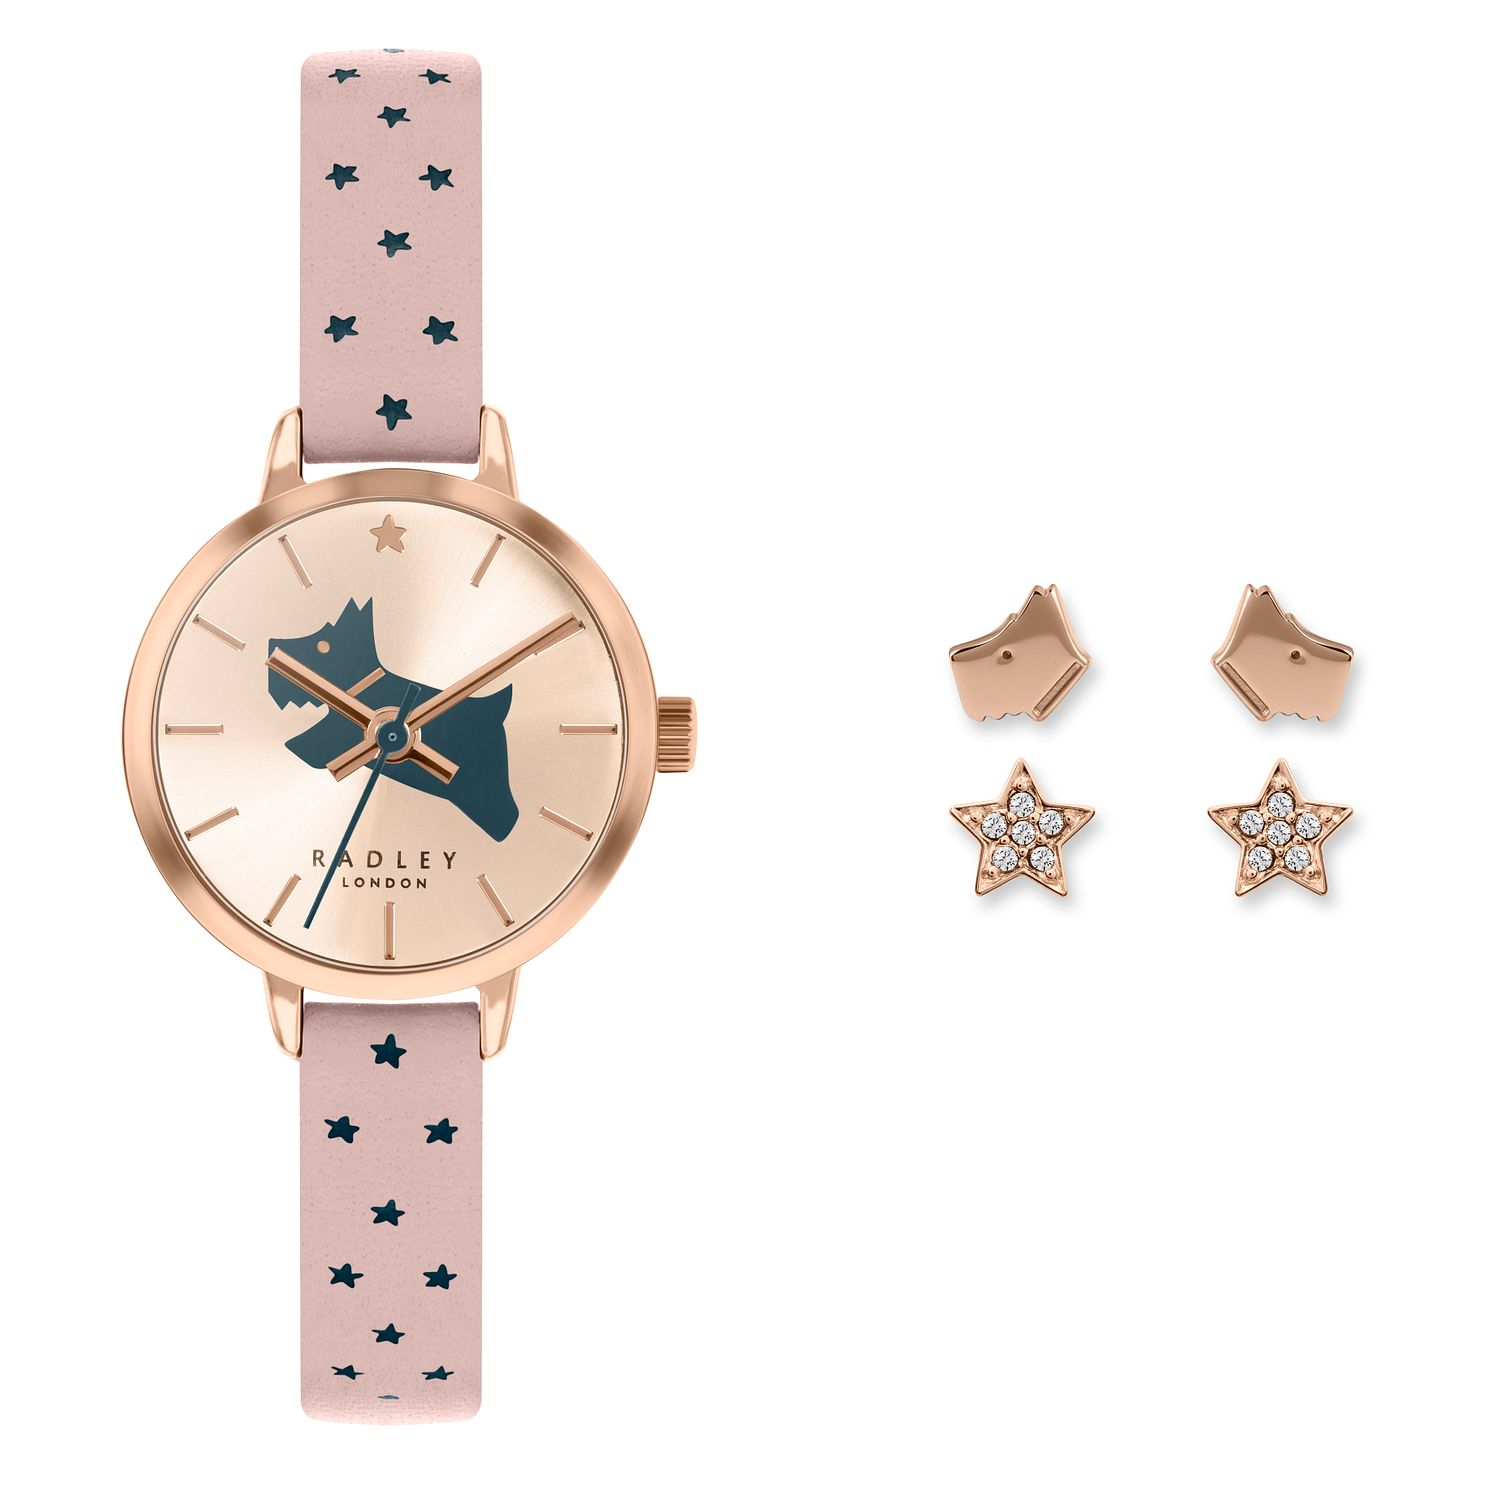 Radley London Ladies' Star Strap Watch & Earrings Gift Set - Product number 5086930